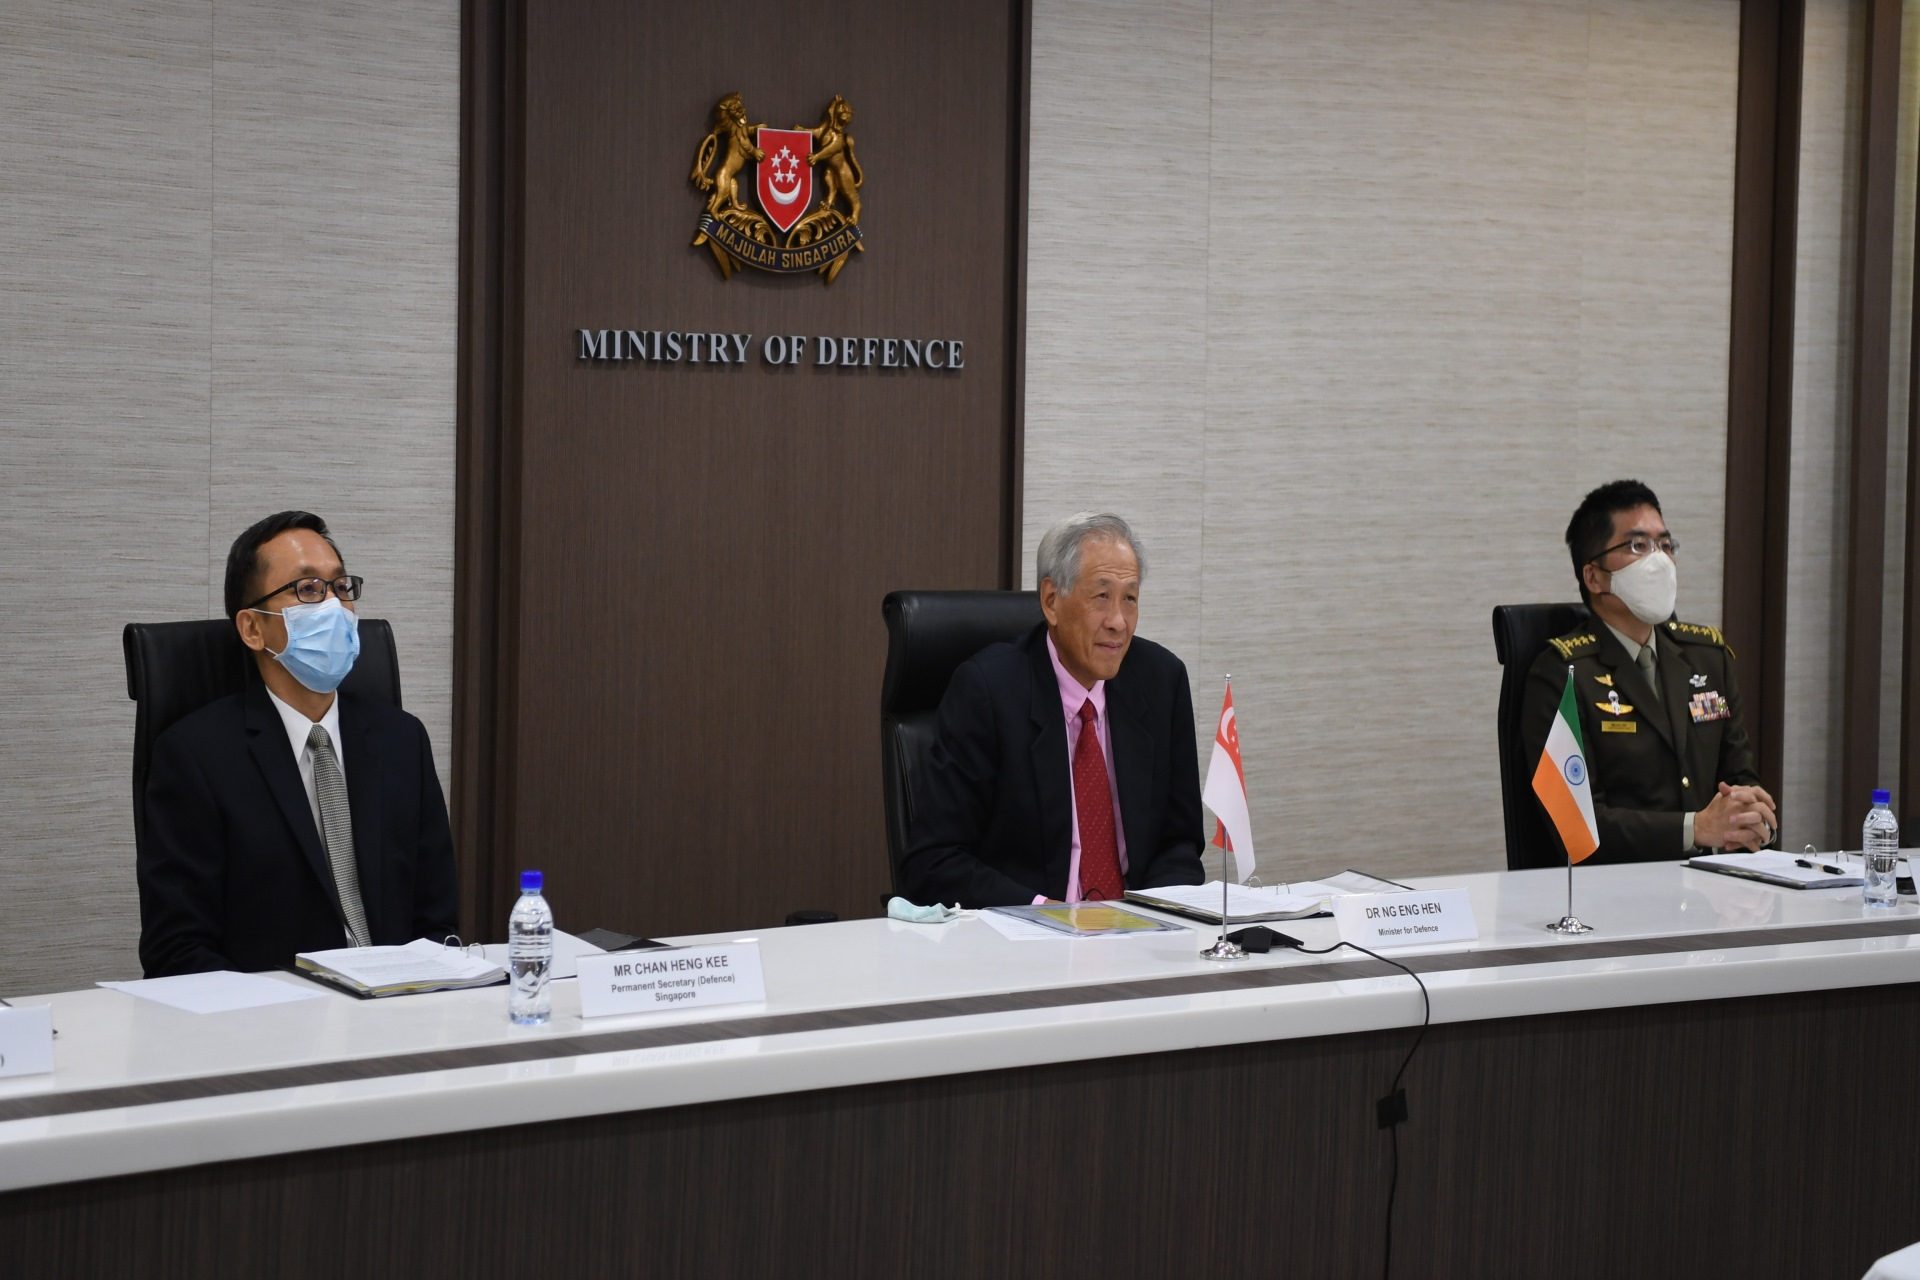 Minister for Defence Dr Ng Eng Hen (centre) co-chairing the 5th India-Singapore Defence Ministers' Dialogue (DMD) with India's Minister of Defence Rajnath Singh over video conferencing. Photo Courtesy: MINDEF